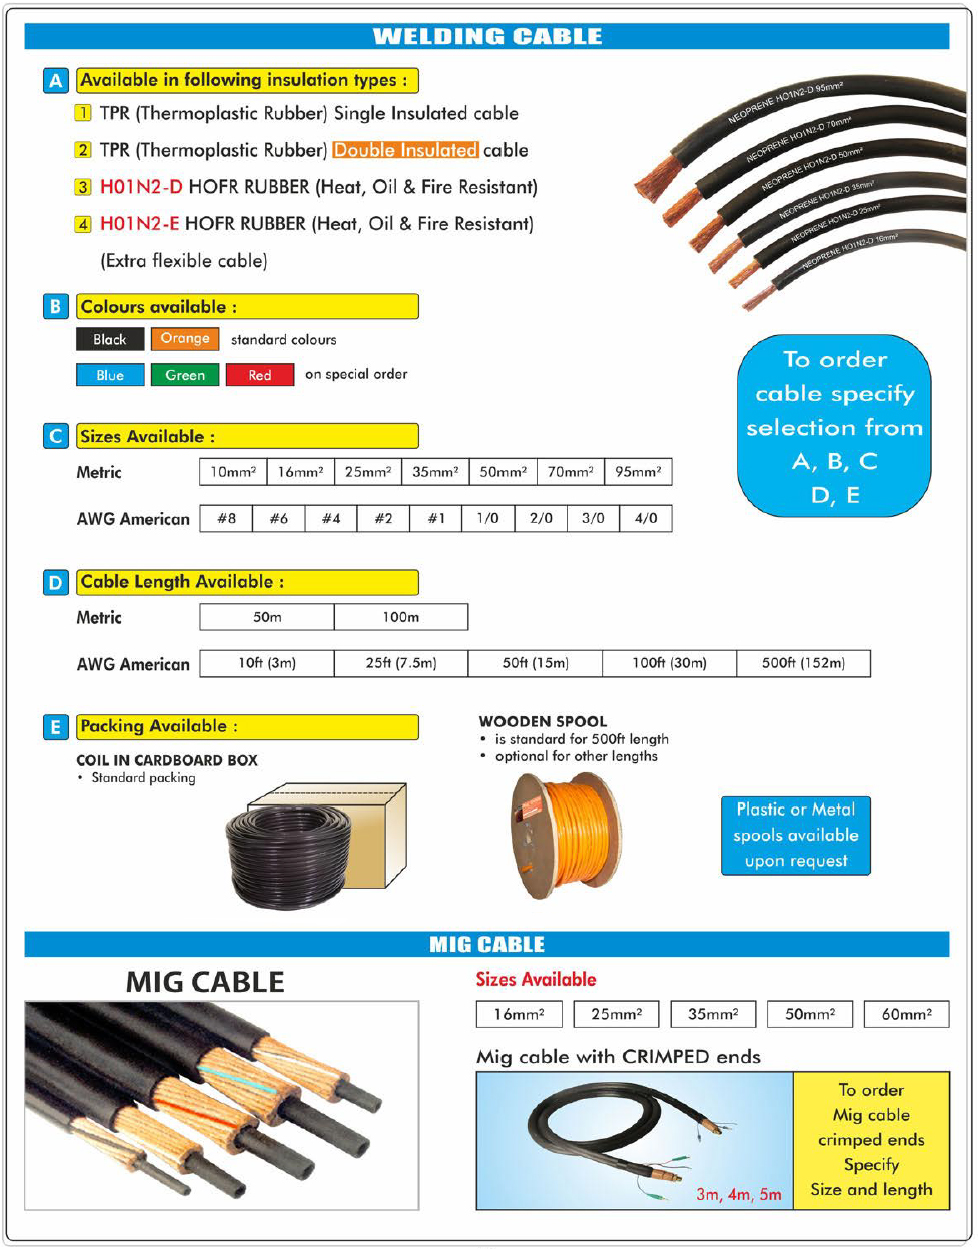 Welding Cable, Cable Kits, Mumbai, India